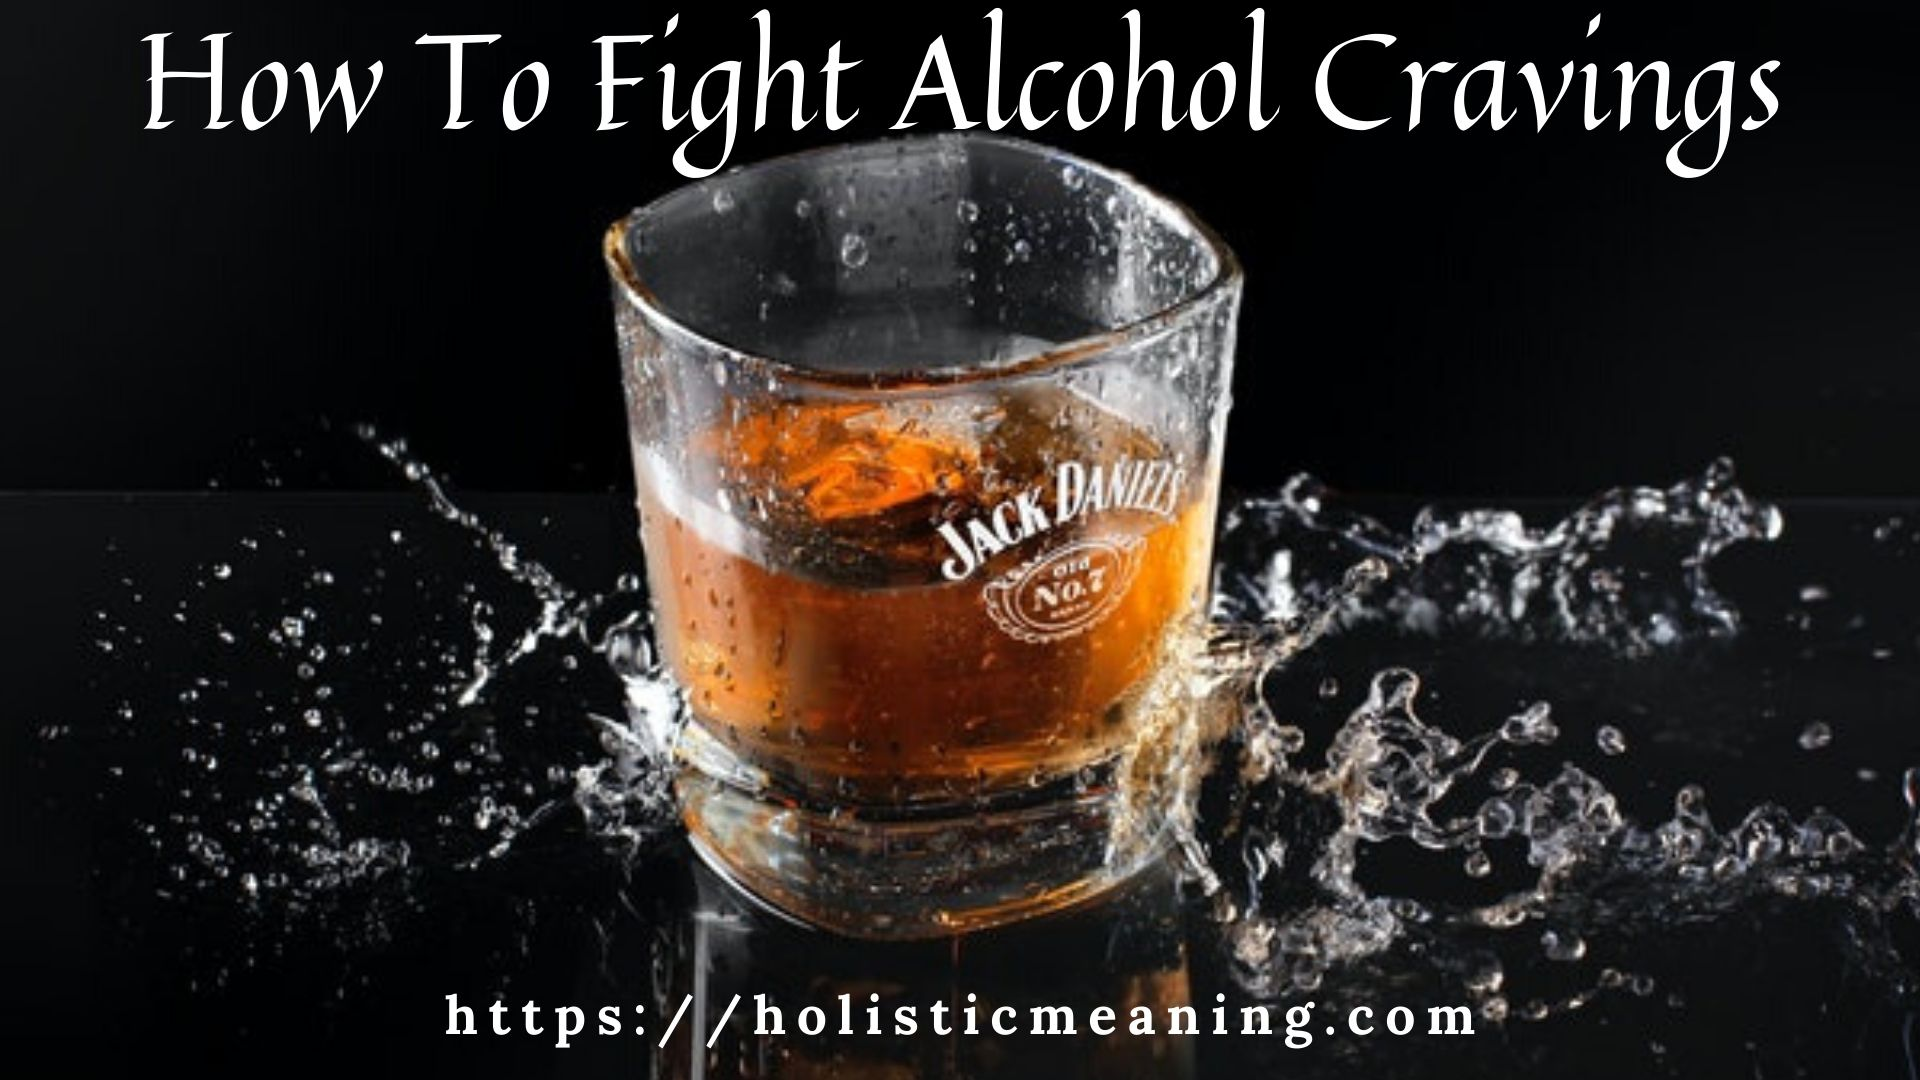 How To Fight Alcohol Cravings